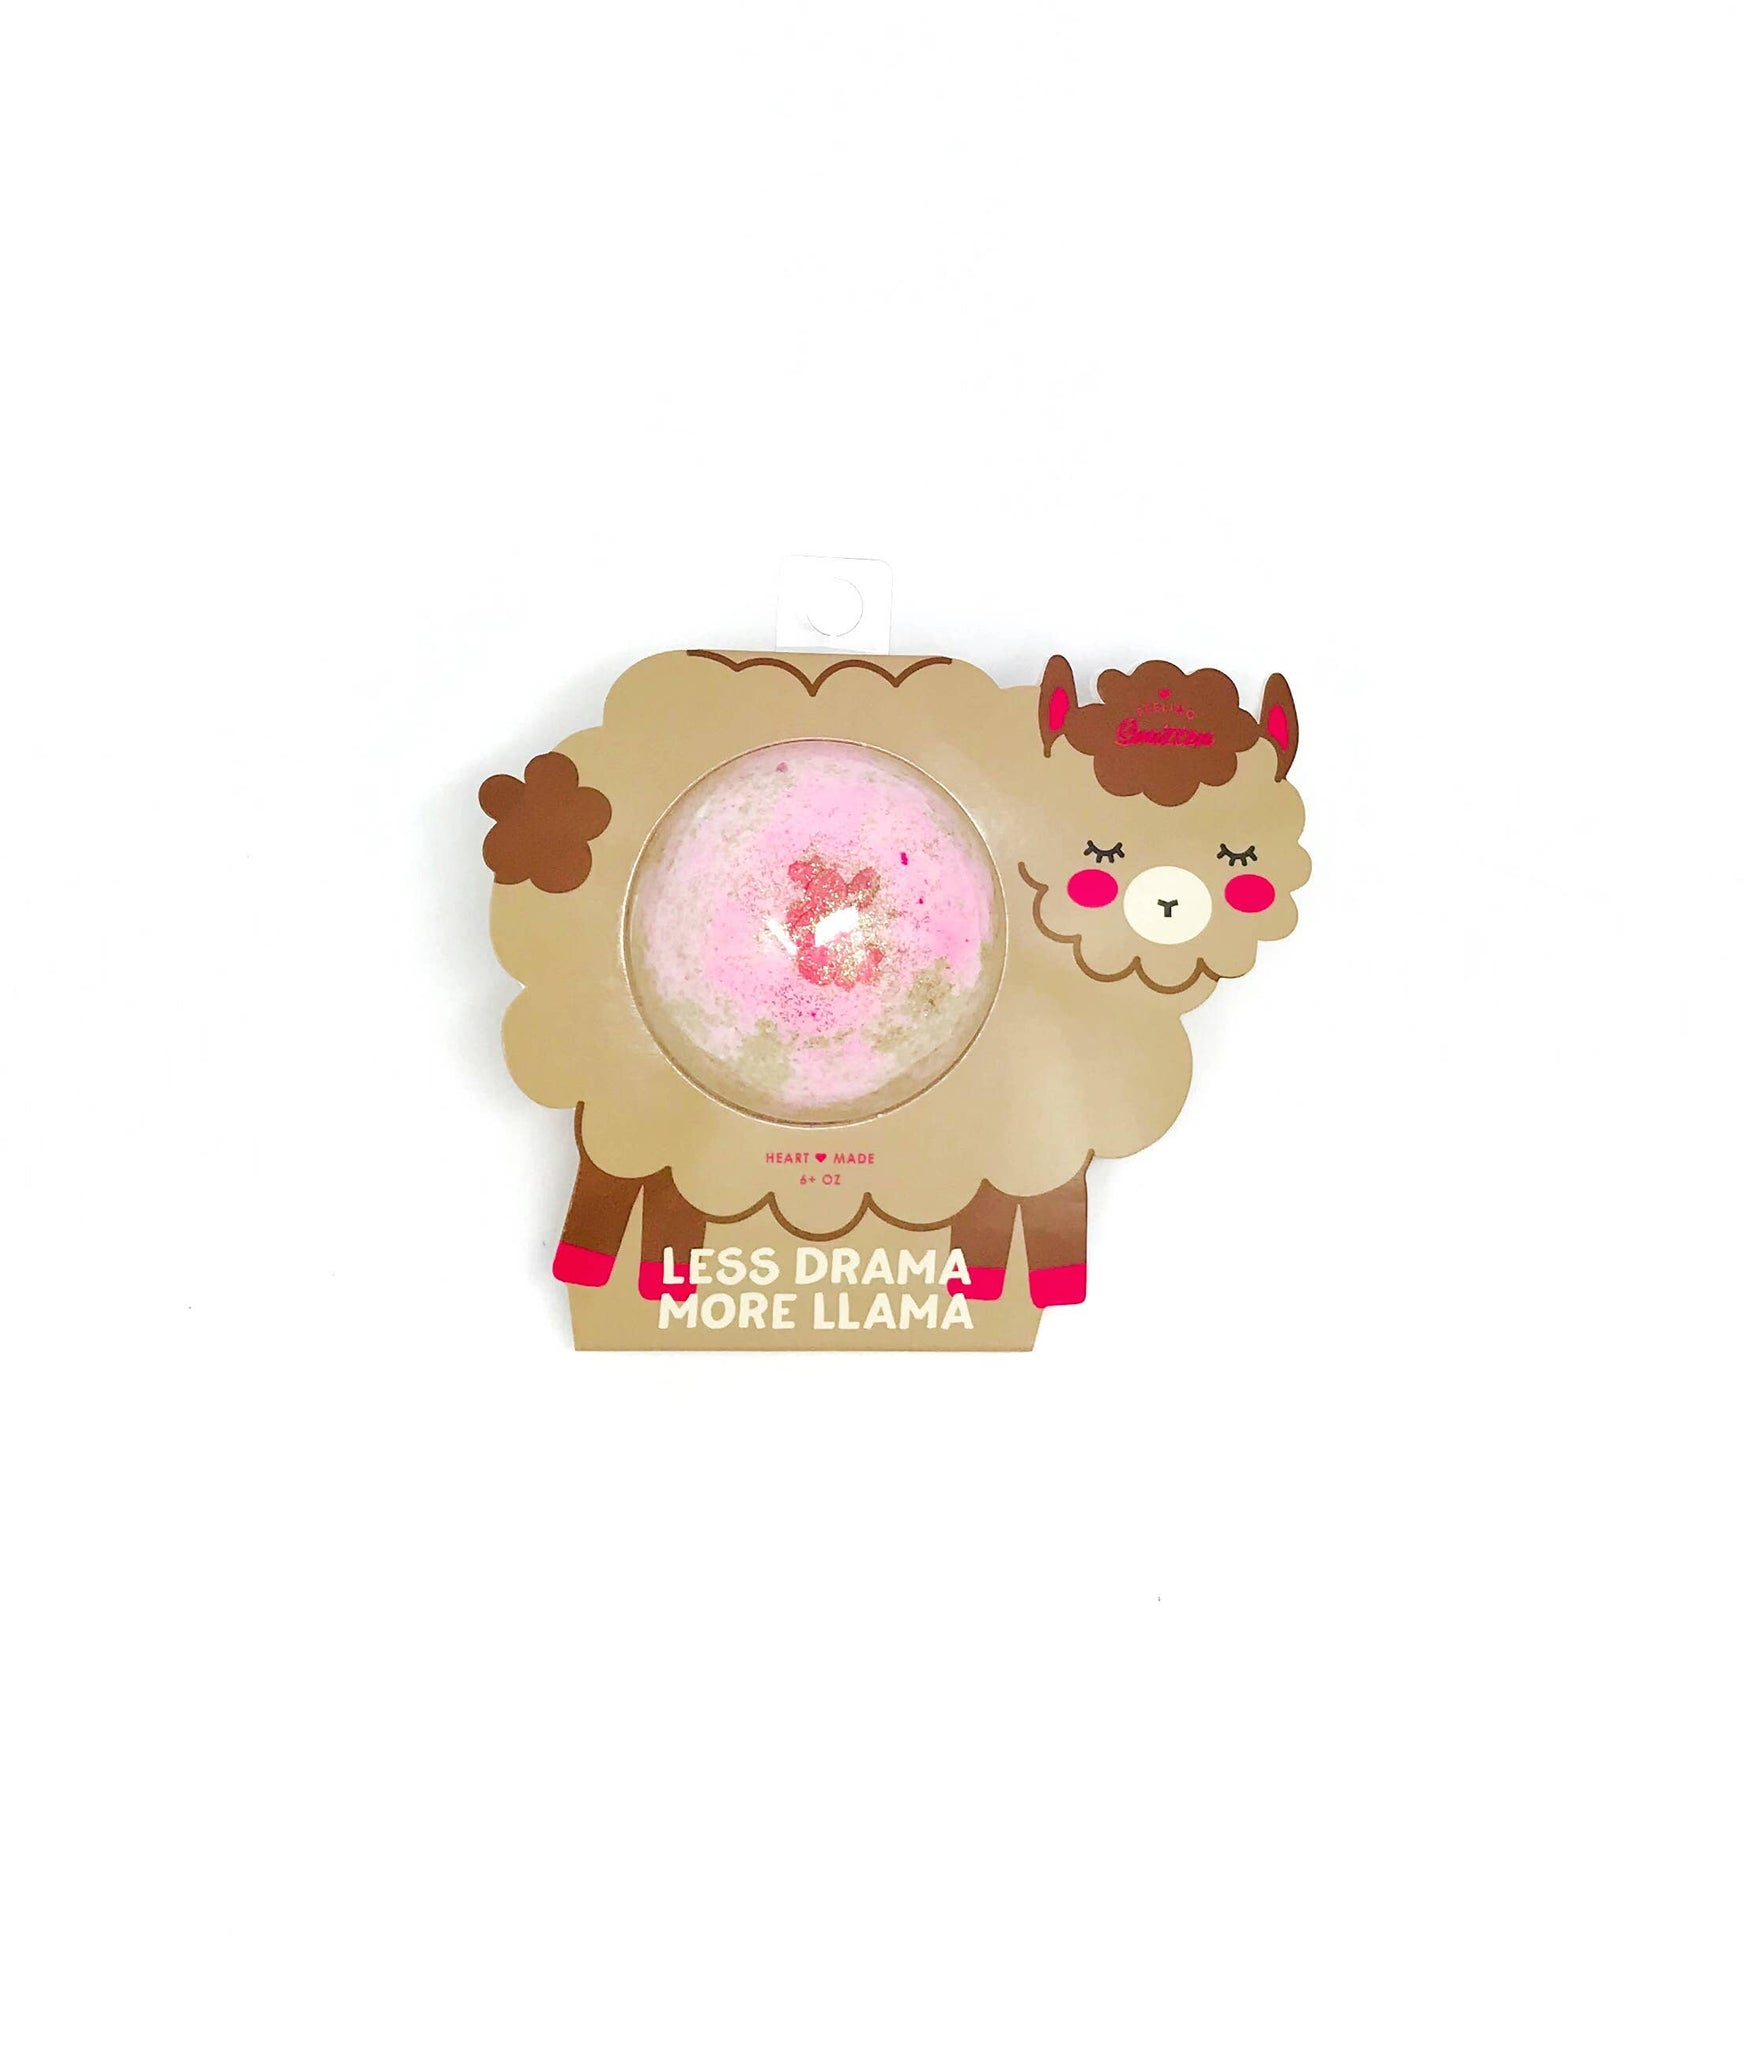 Feeling Smitten - Less Drama More a Llama Bath Bomb - Clamshell Packaging - Miss Scarlett Boutique